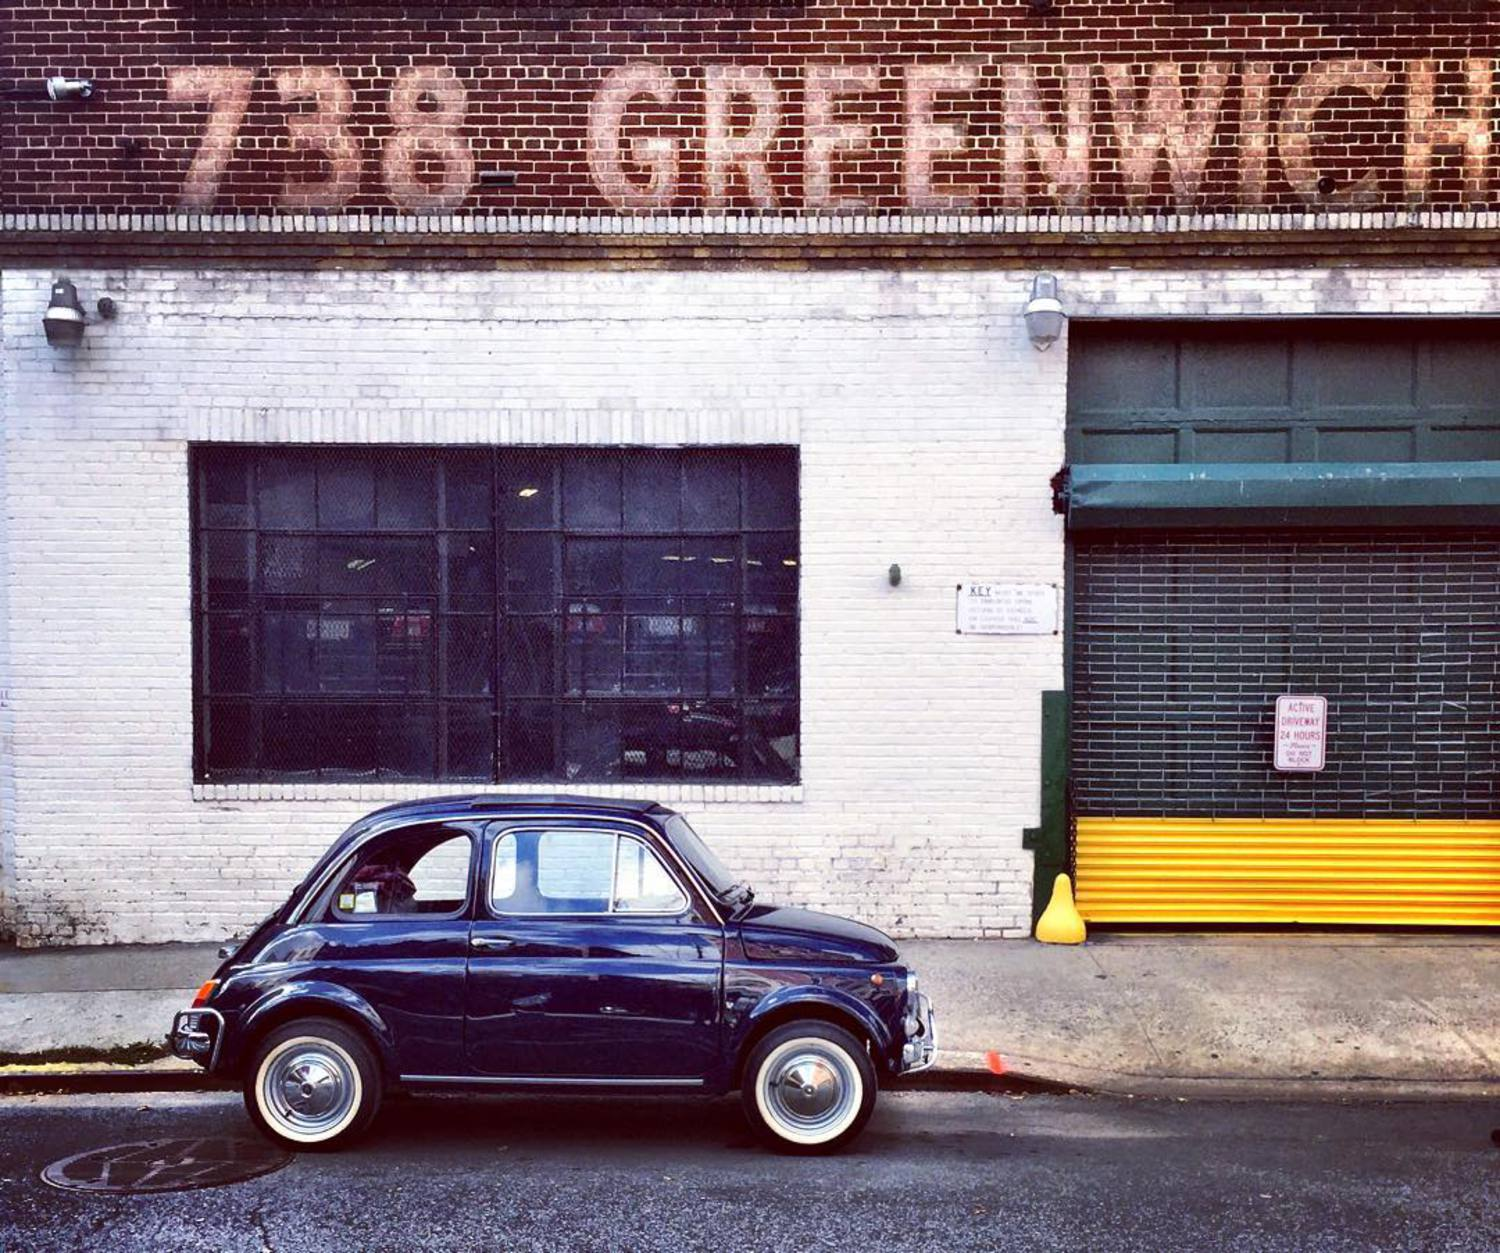 A piece of Italy 🇮🇹 in #WestVillage 🇺🇸 #fiat500